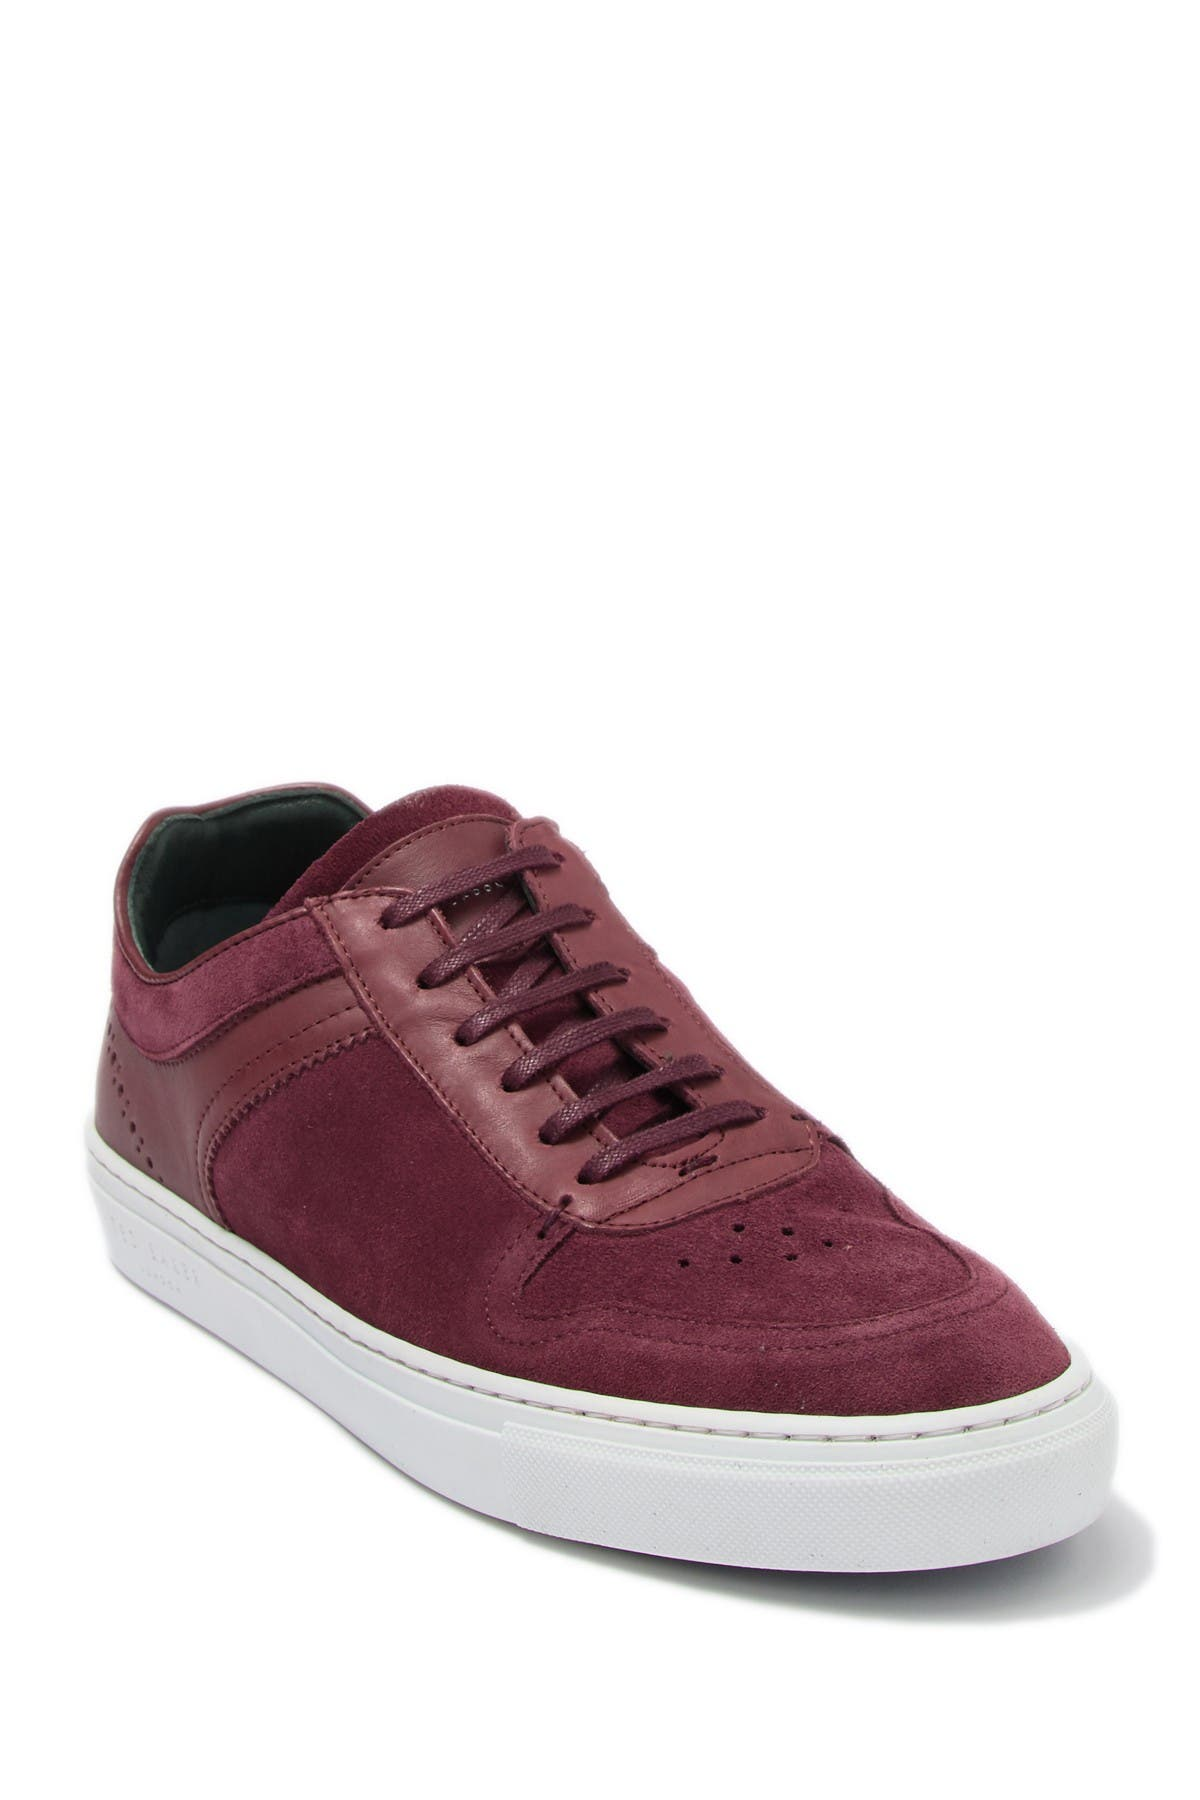 Image of Ted Baker London Burall Lace-Up Sneaker